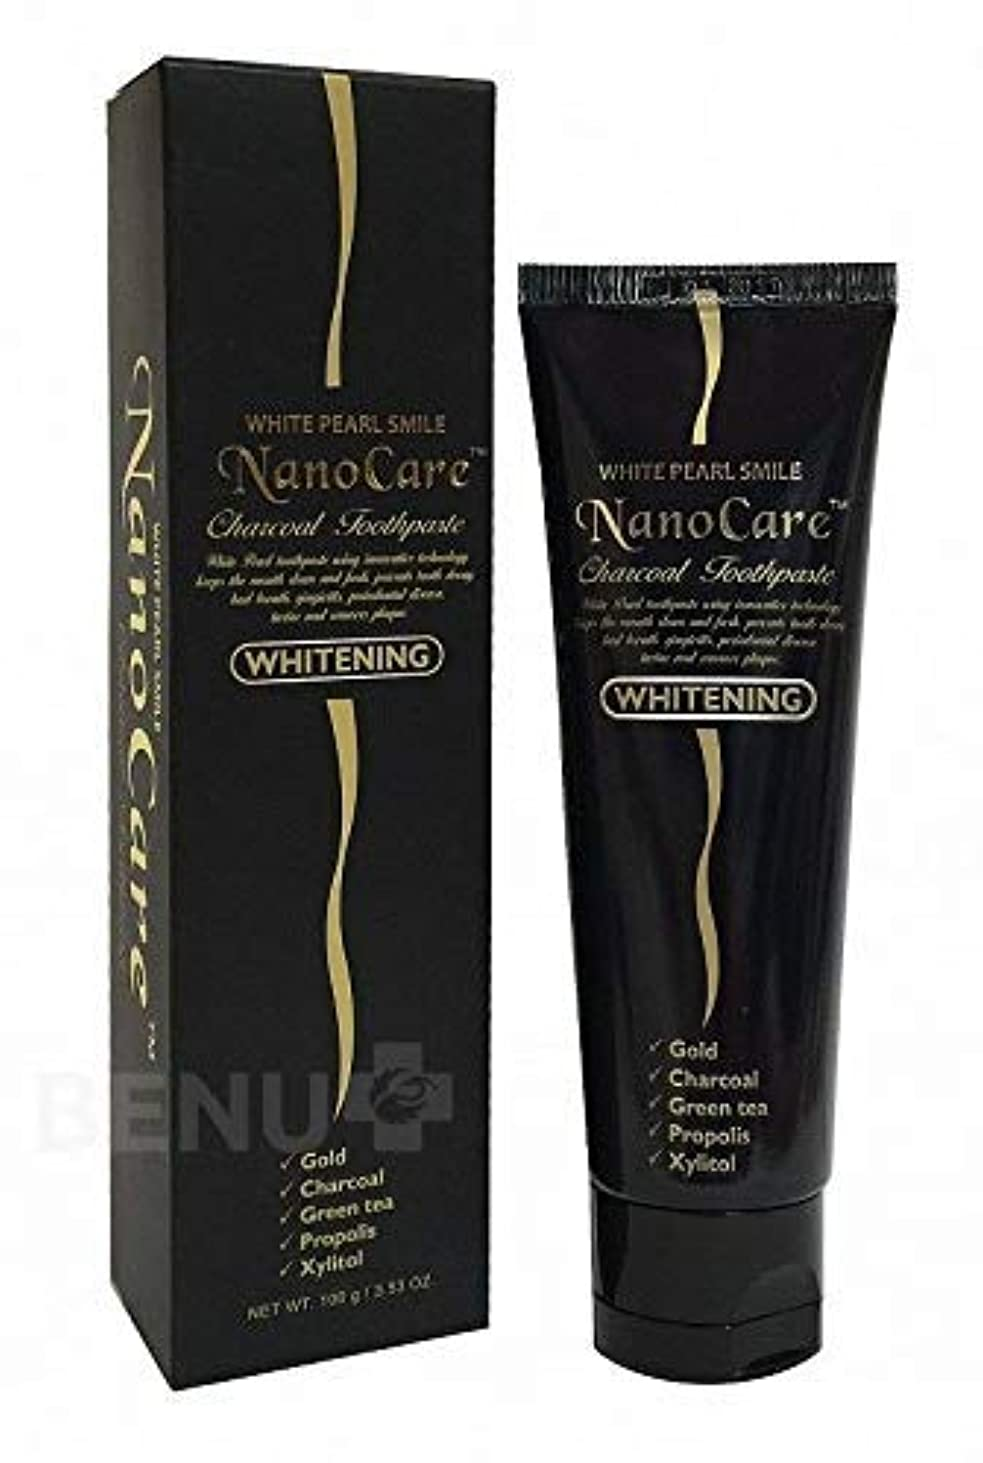 Nano Care Whitening Toothpaste with 24K Gold and Activated Charcoal nanoparticles 100 ml Made in Korea / 24Kゴールド...